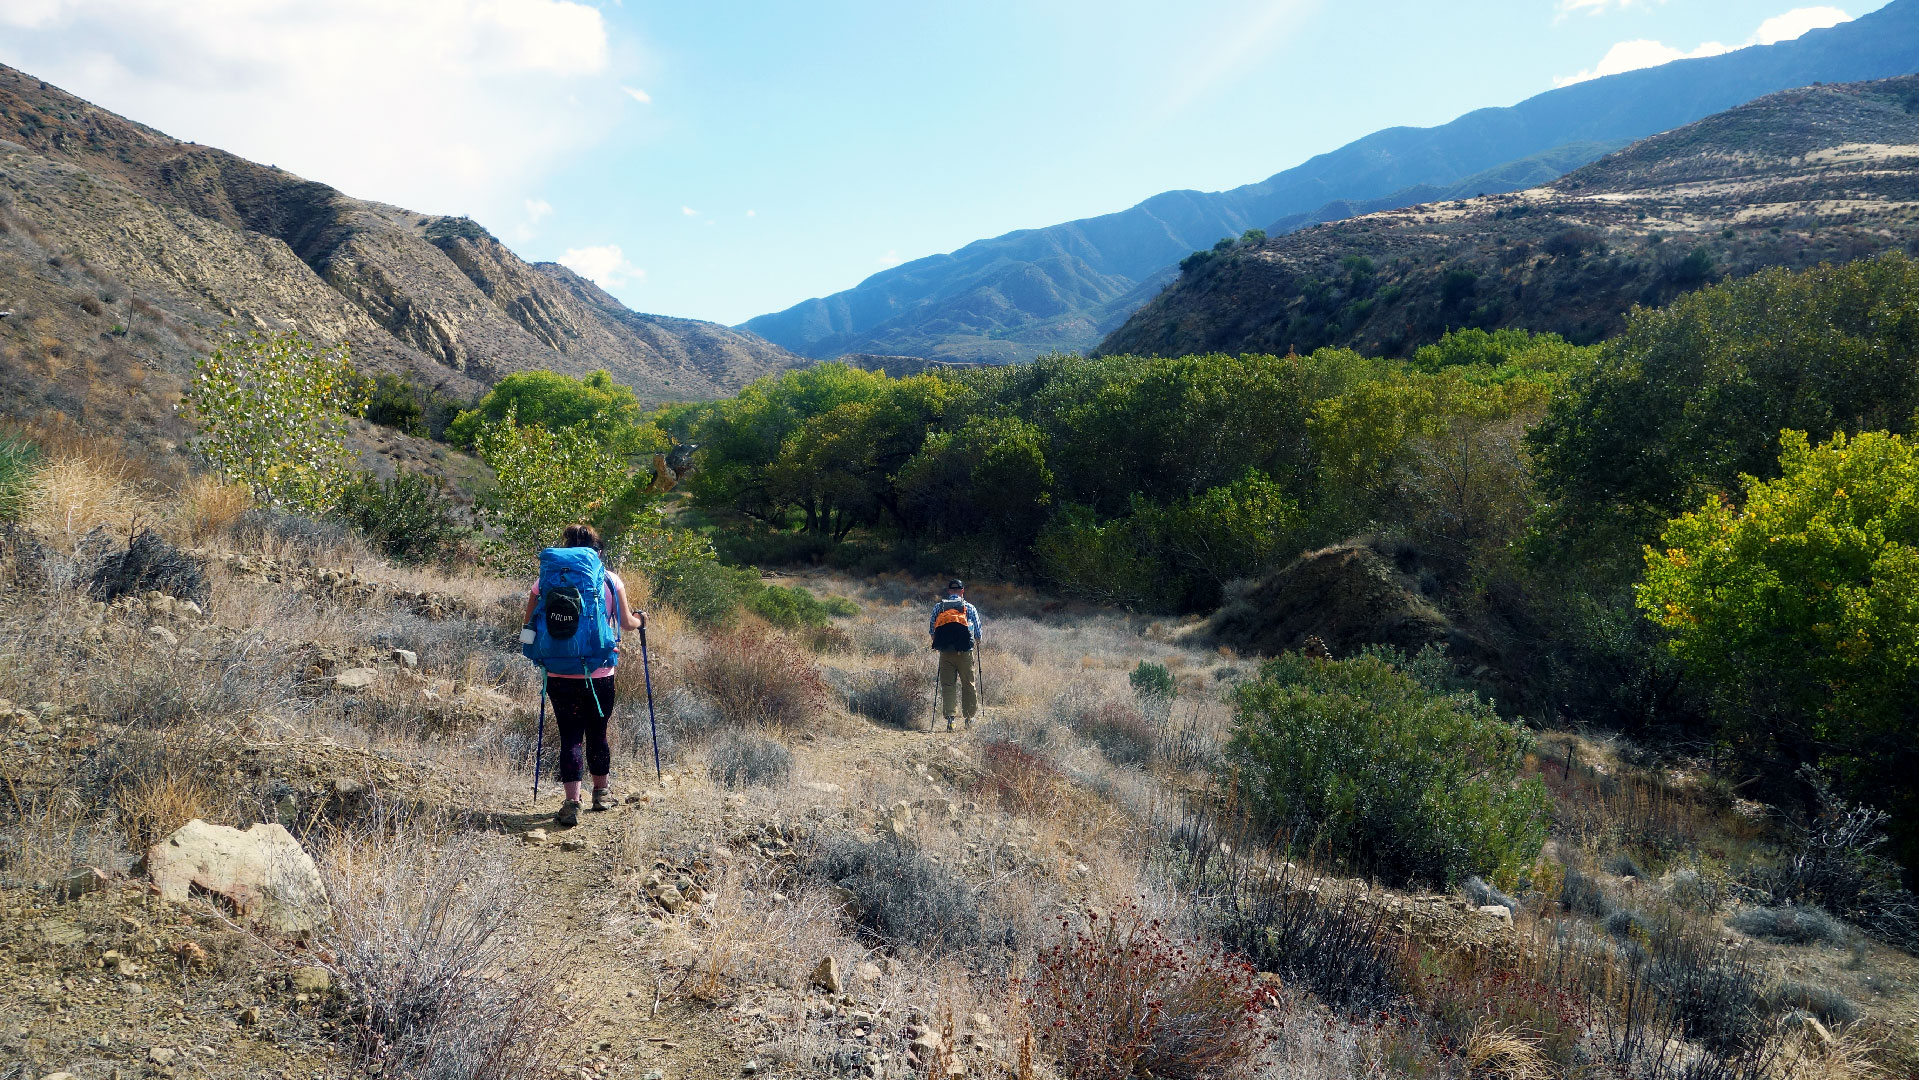 Crossing Sespe Creek - Hiking and Camping in Los Padres National Forest